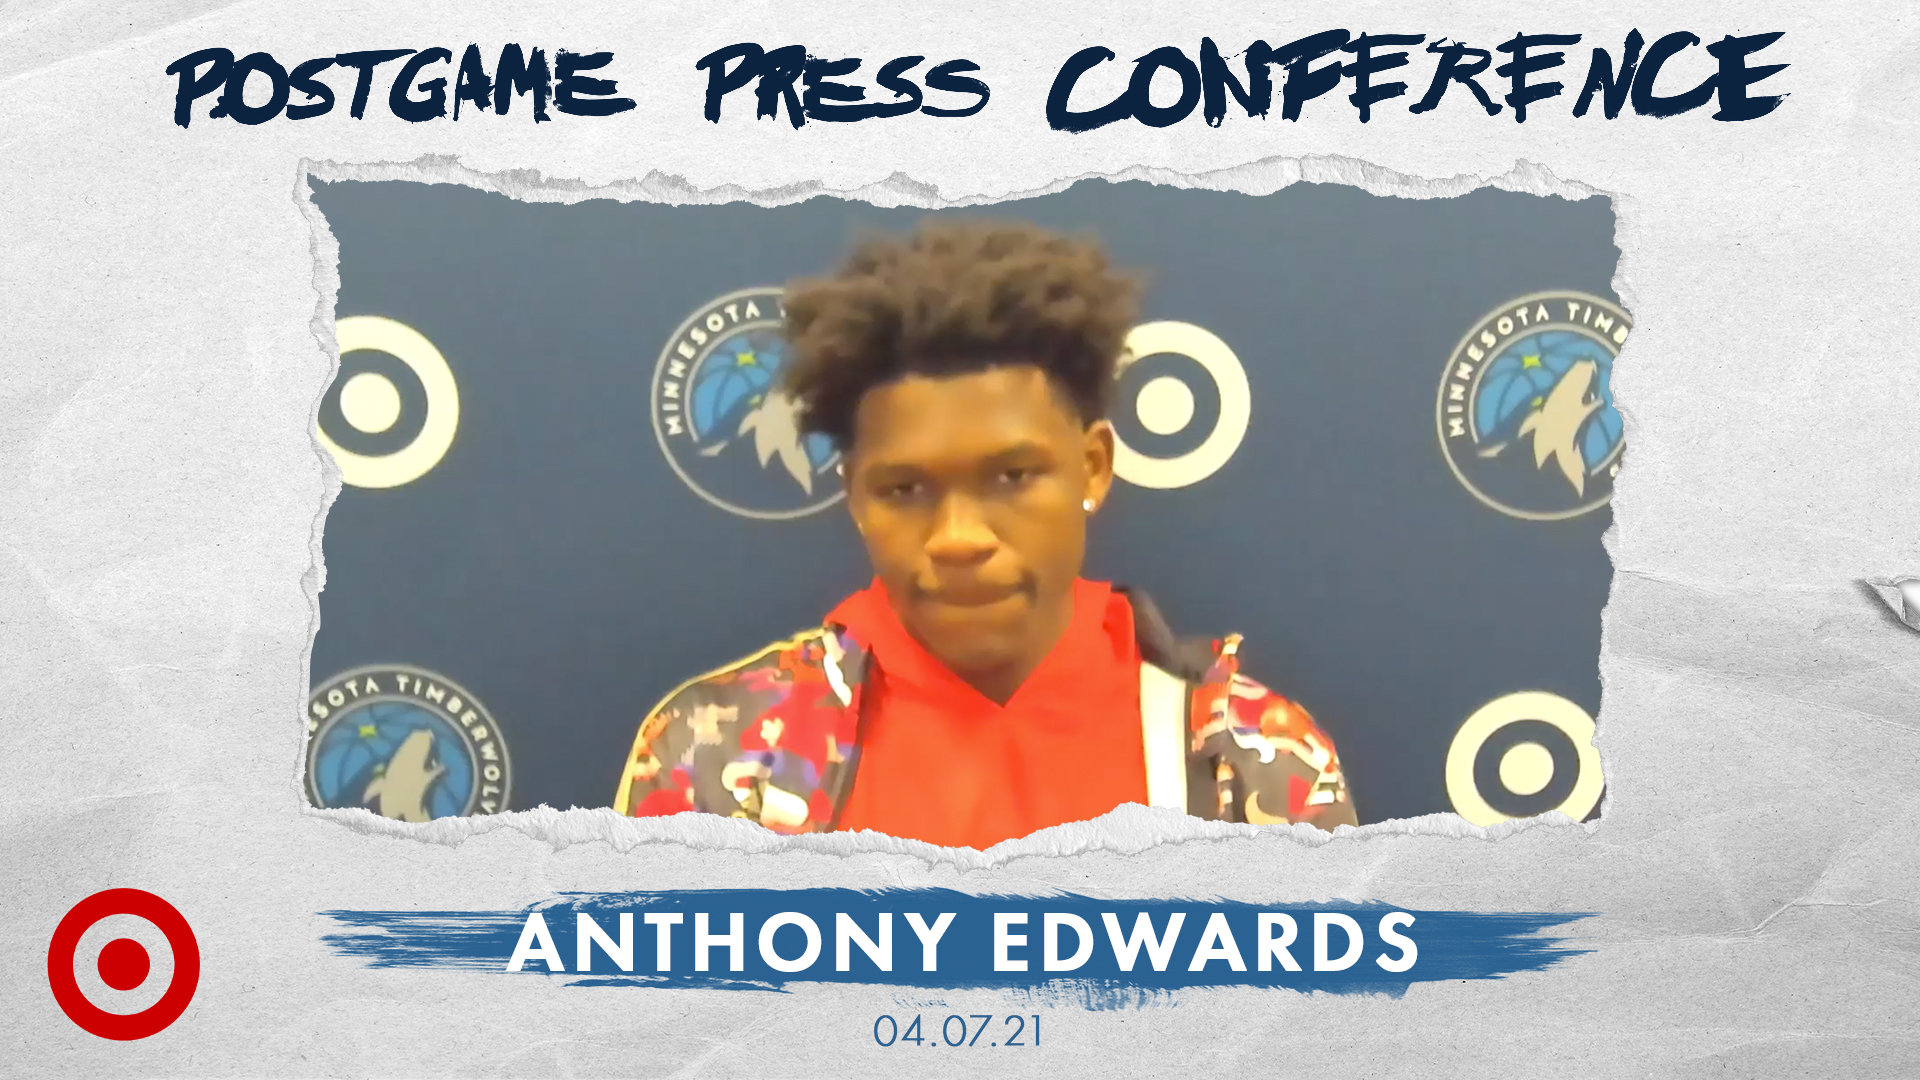 Anthony Edwards Postgame Press Conference - April 7, 2021